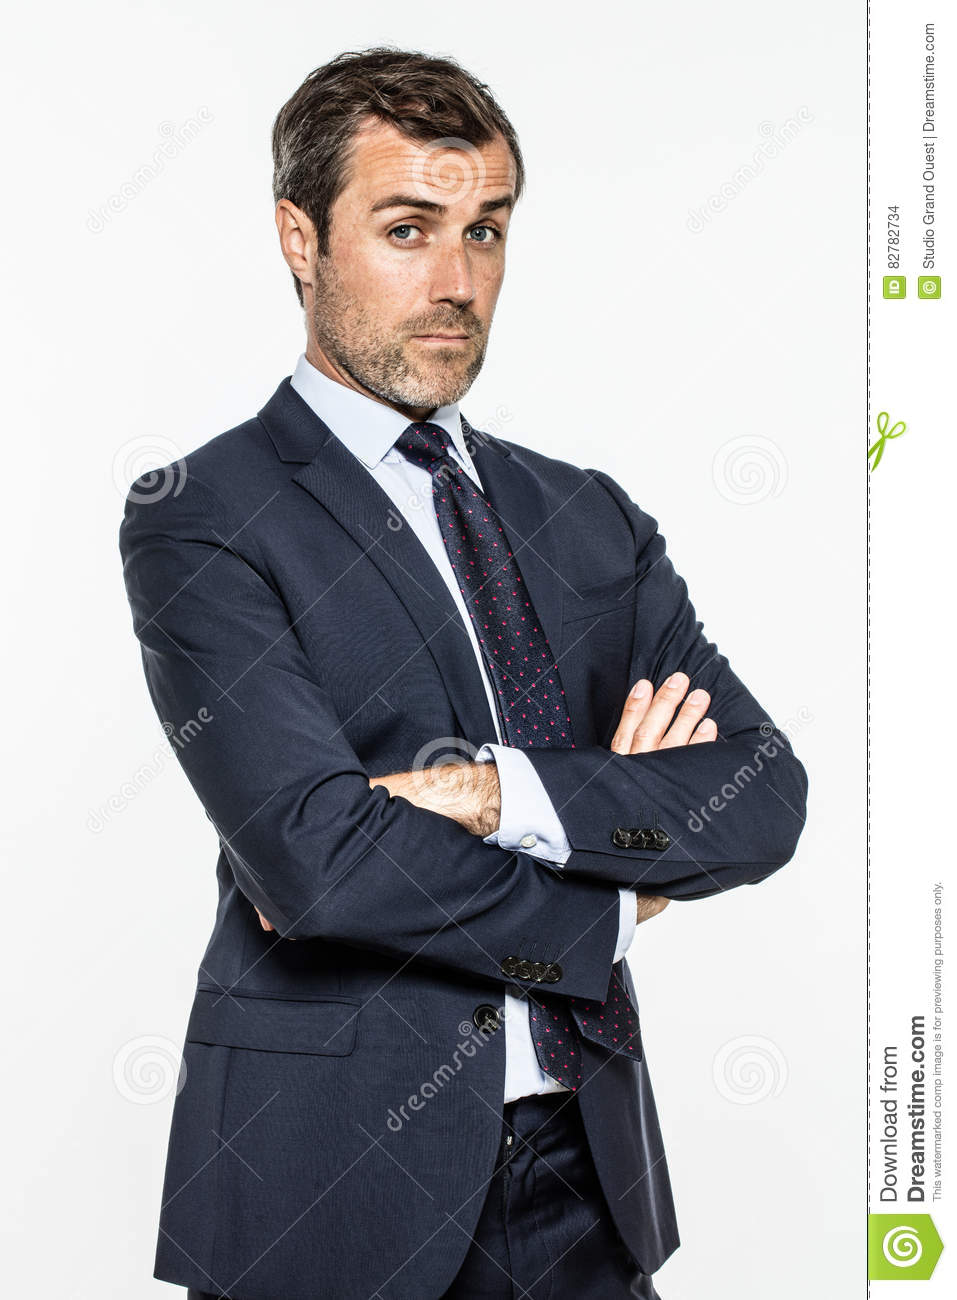 Snob Middle Aged Businessman With Arms Crossed Standing With